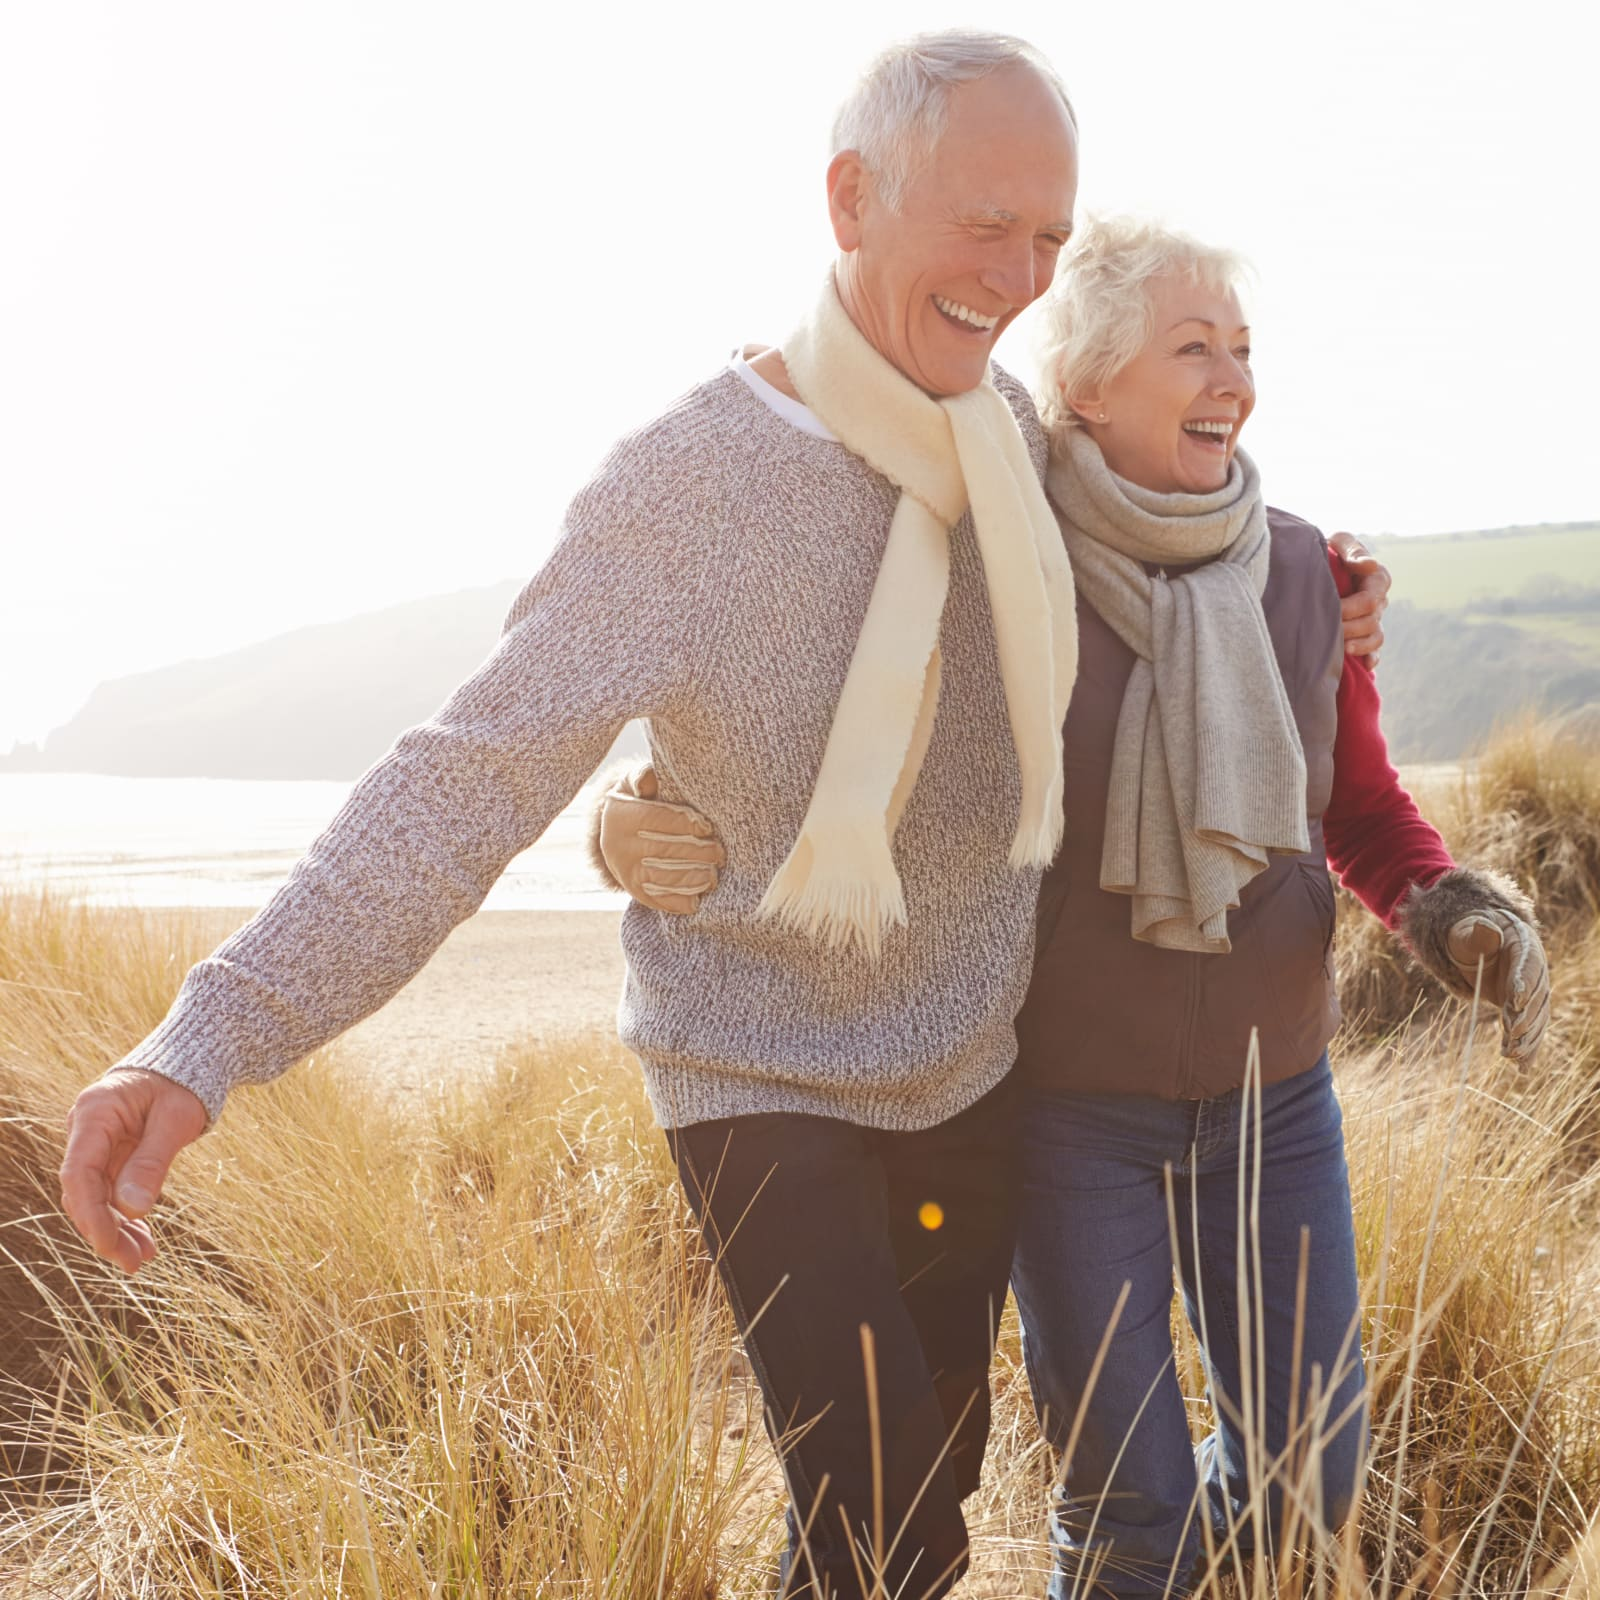 Life Insurance Quotes For Seniors Over 75 Best Life Insurance For Seniors Affordable Options For All Ages